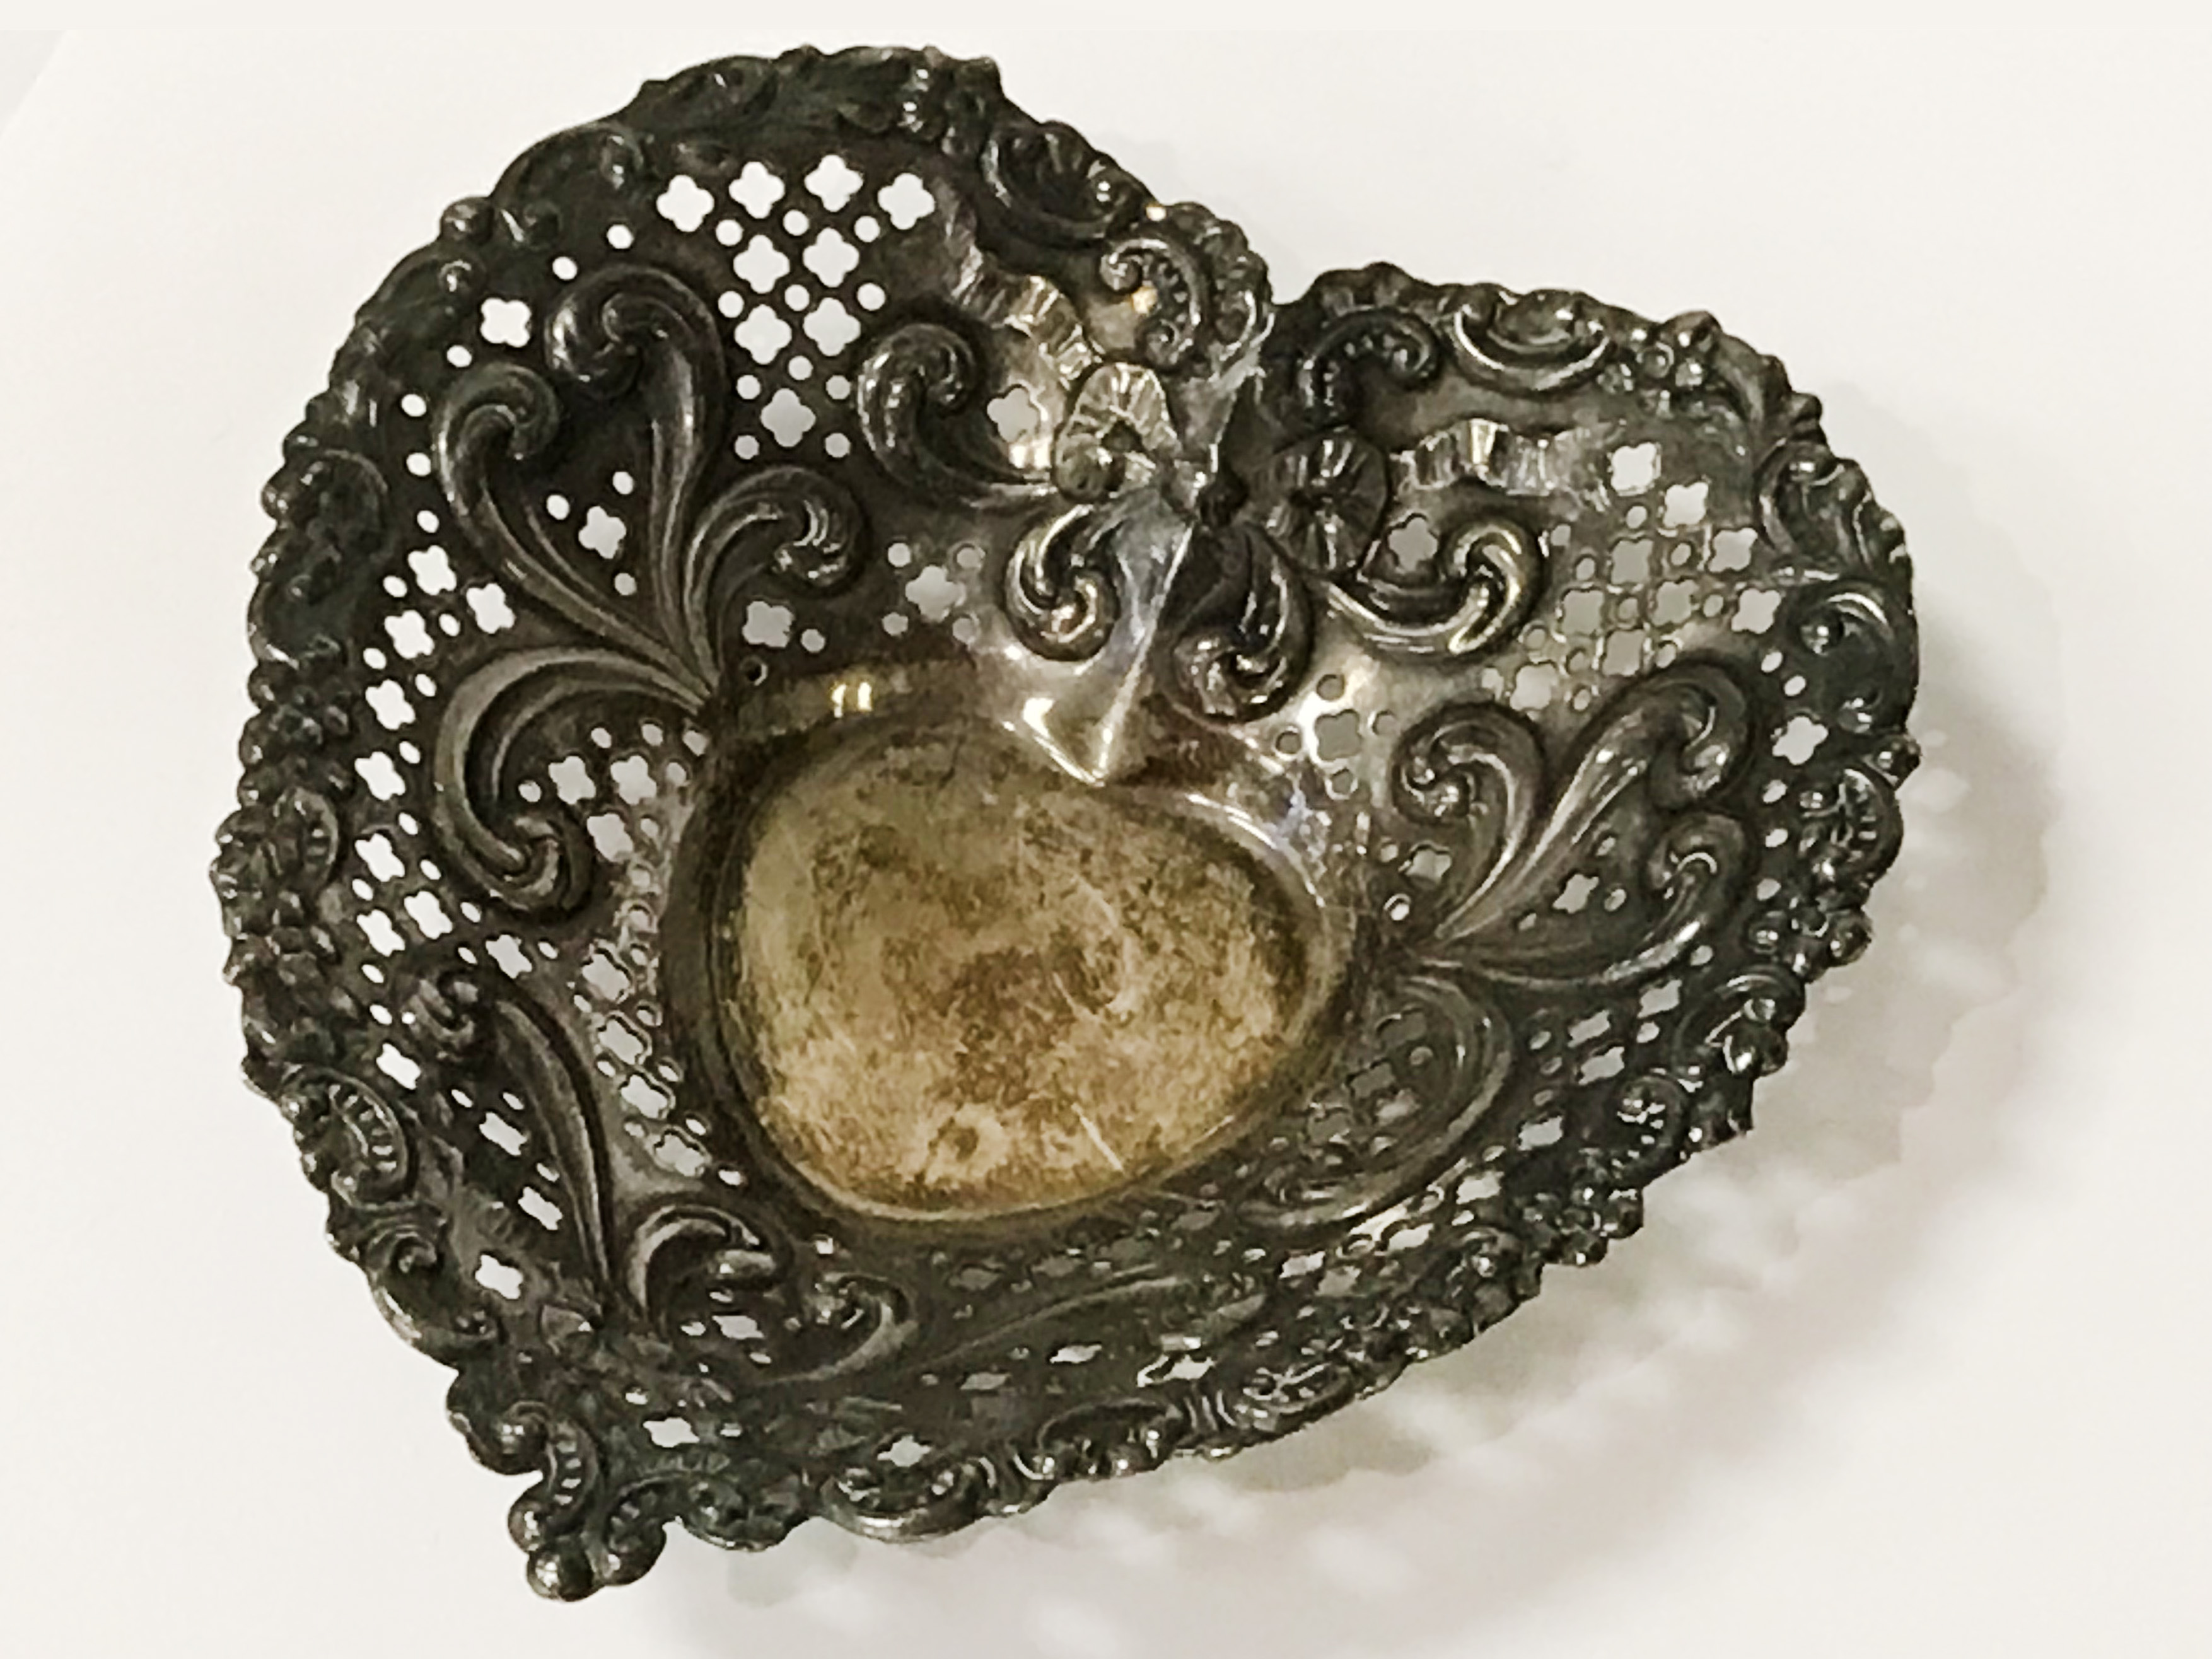 GORHAM STERLING SILVER HEART DISH - 13CMS - Image 2 of 4